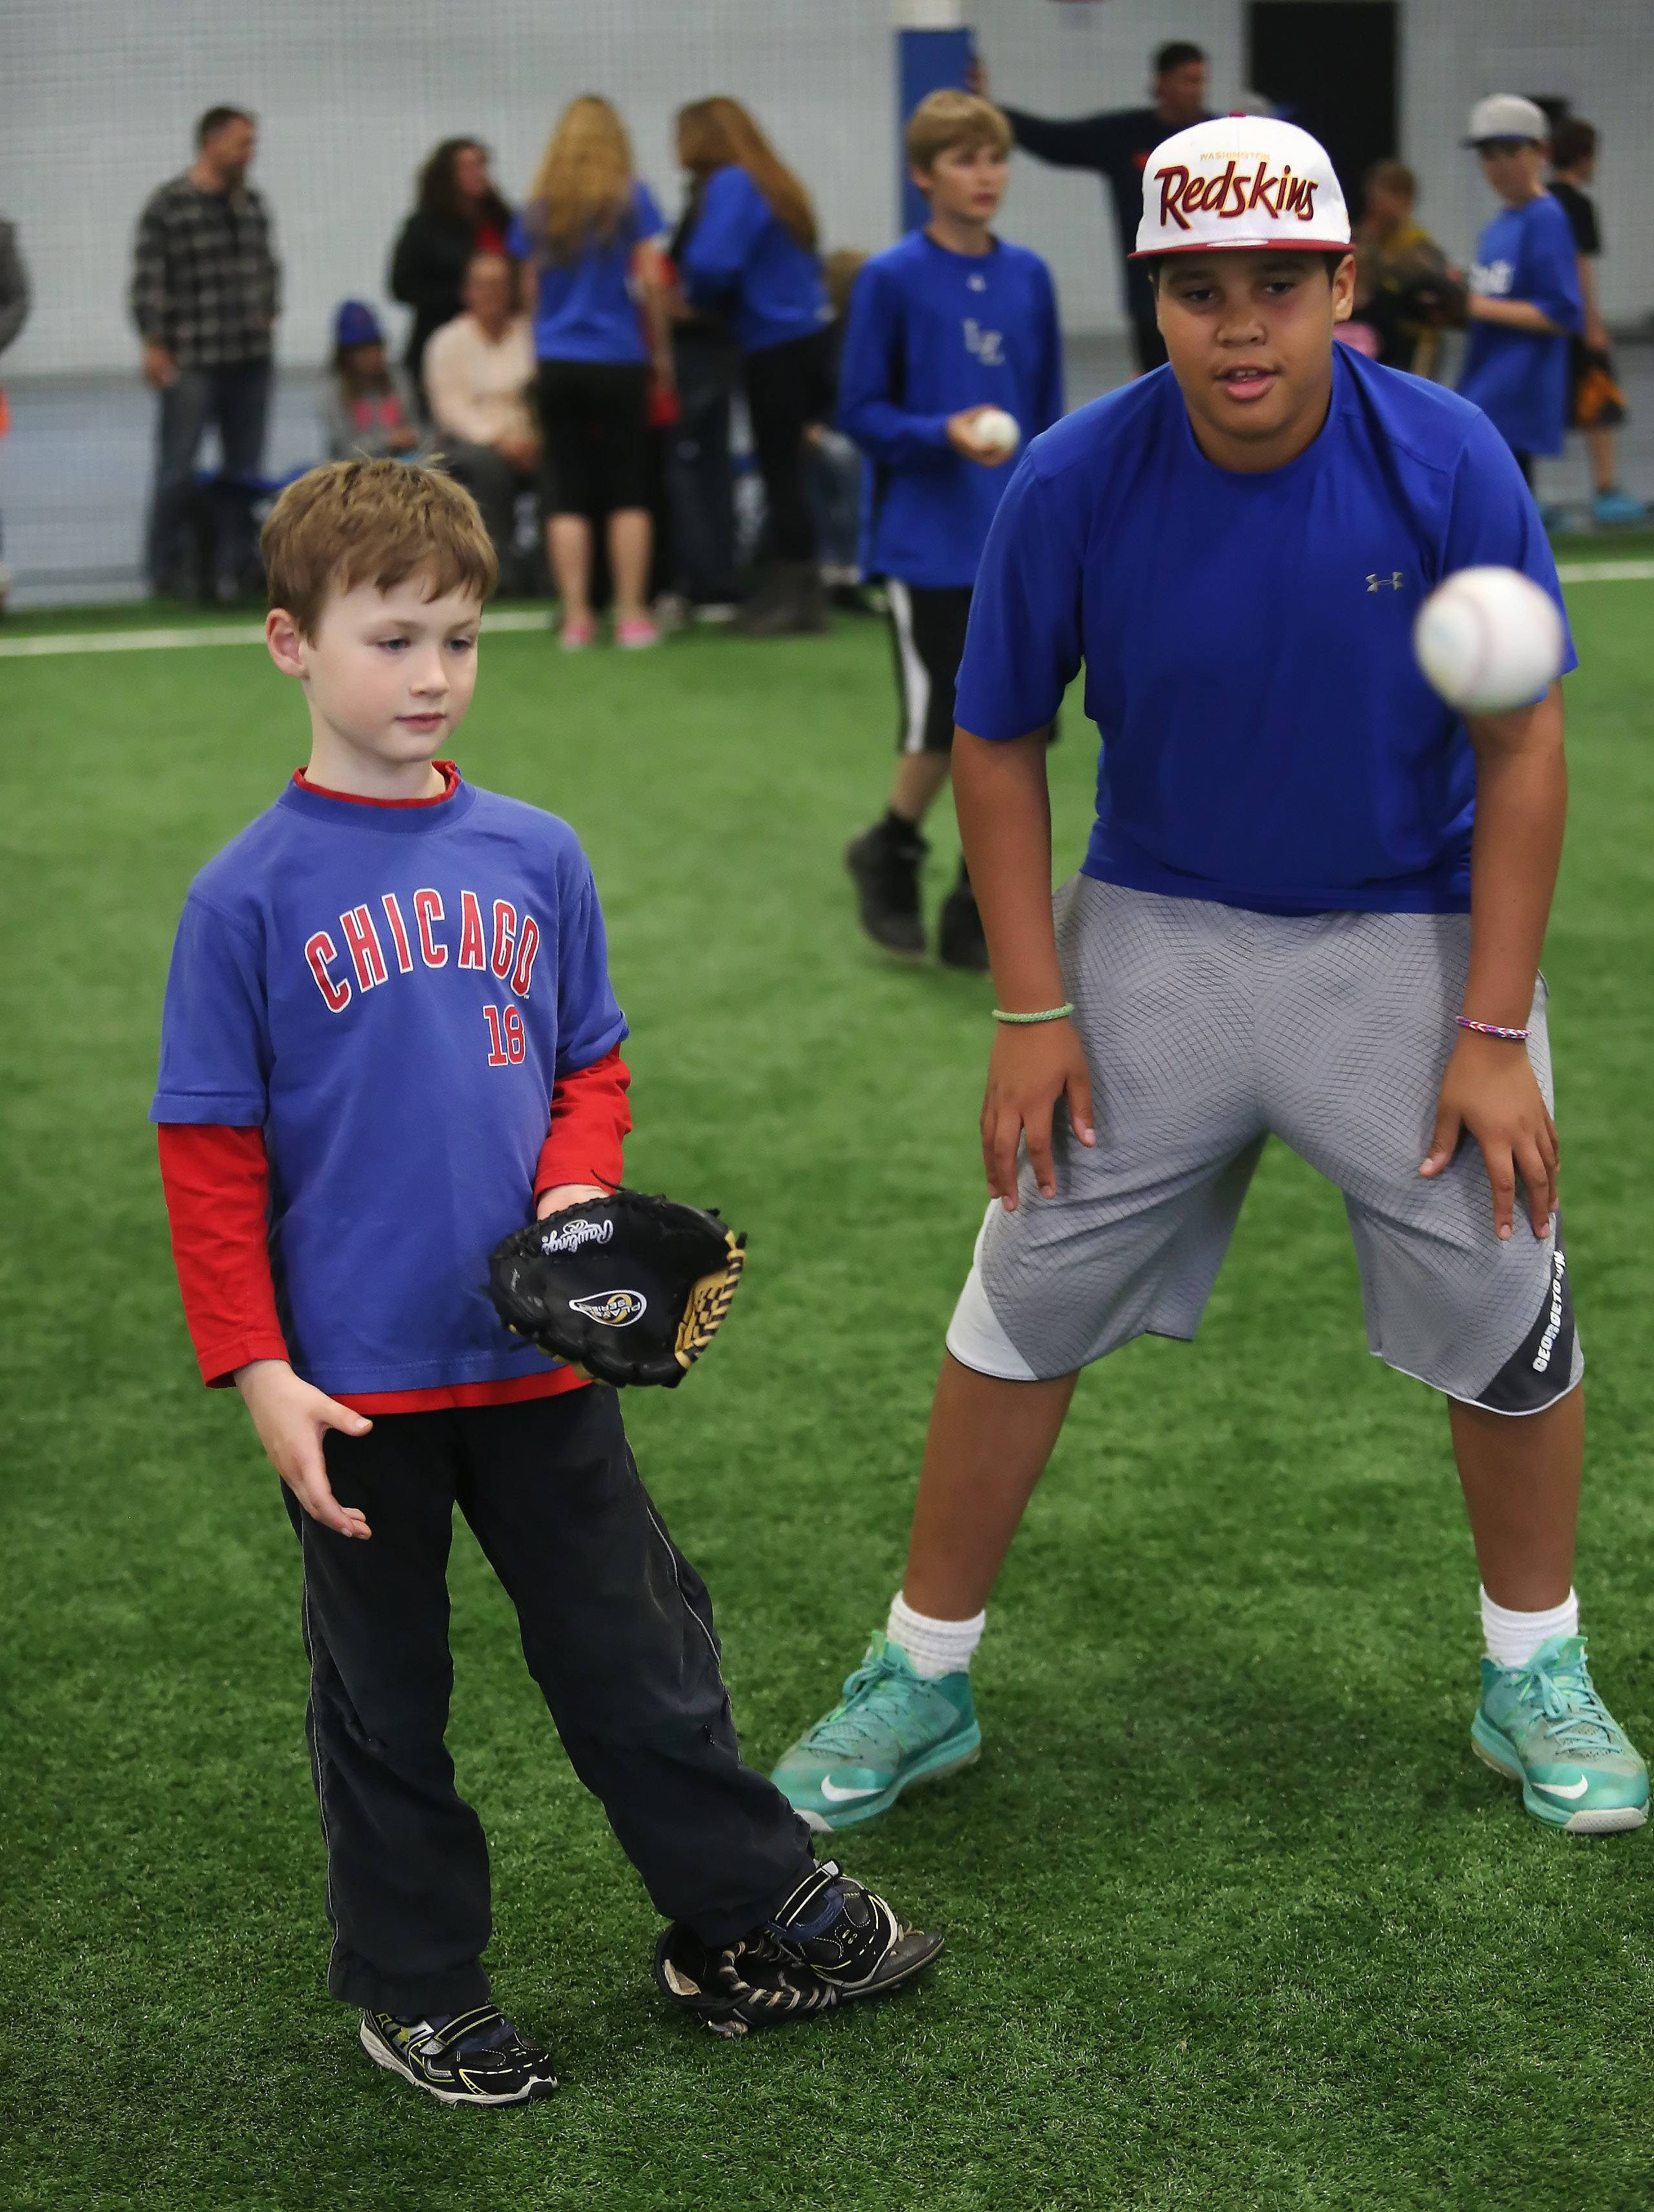 Cubs player Lucas Nelson, left, catches a ball with help from his buddy, Nathan Barnes, 13, during practice with the Lake Zurich Baseball and Softball Association Wednesday at the Main Street Sports Center in Lake Zurich.